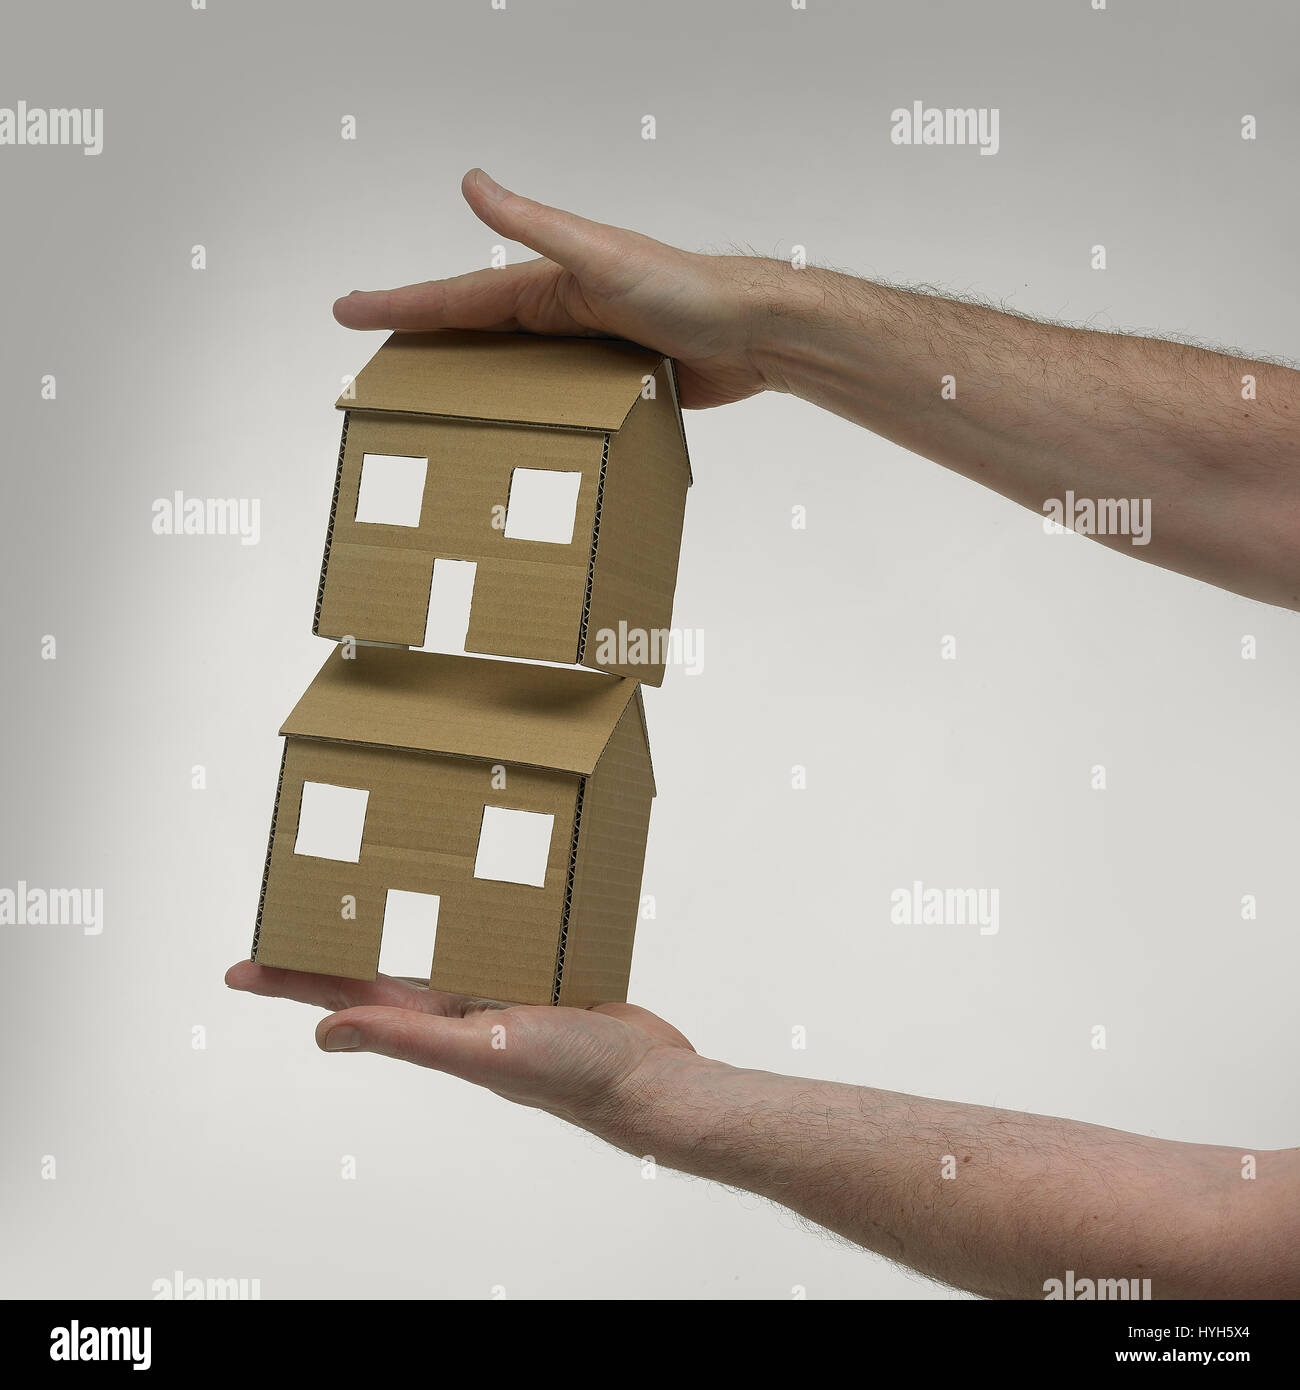 Two Cardboard Houses held in hands. Stock Photo